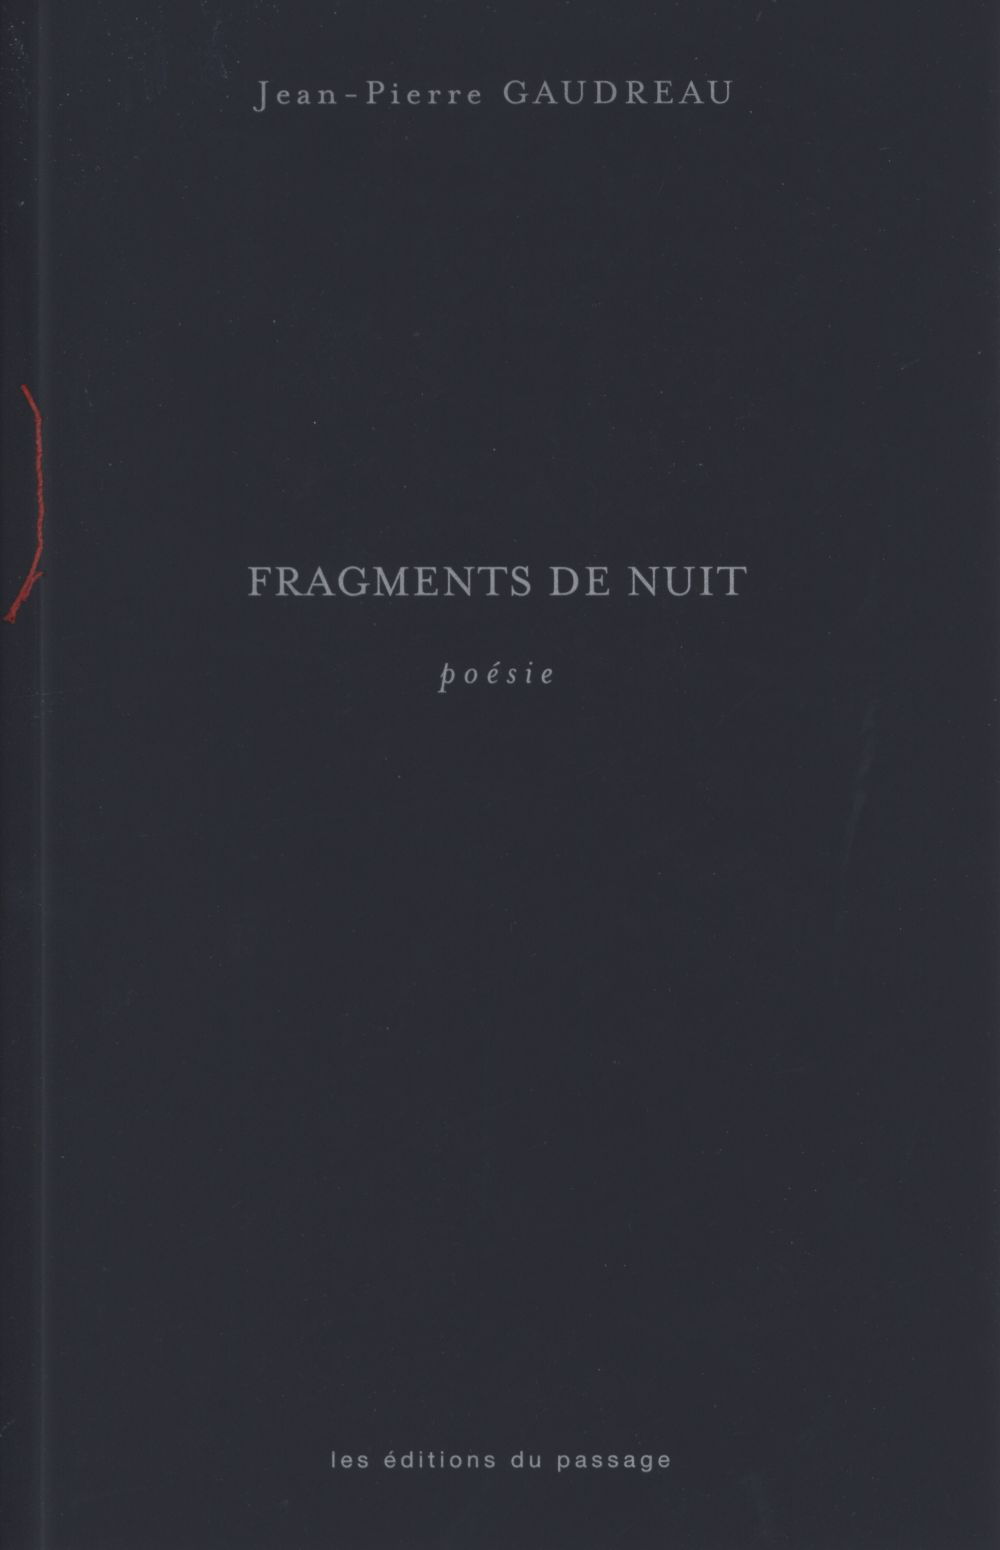 Fragments de nuit